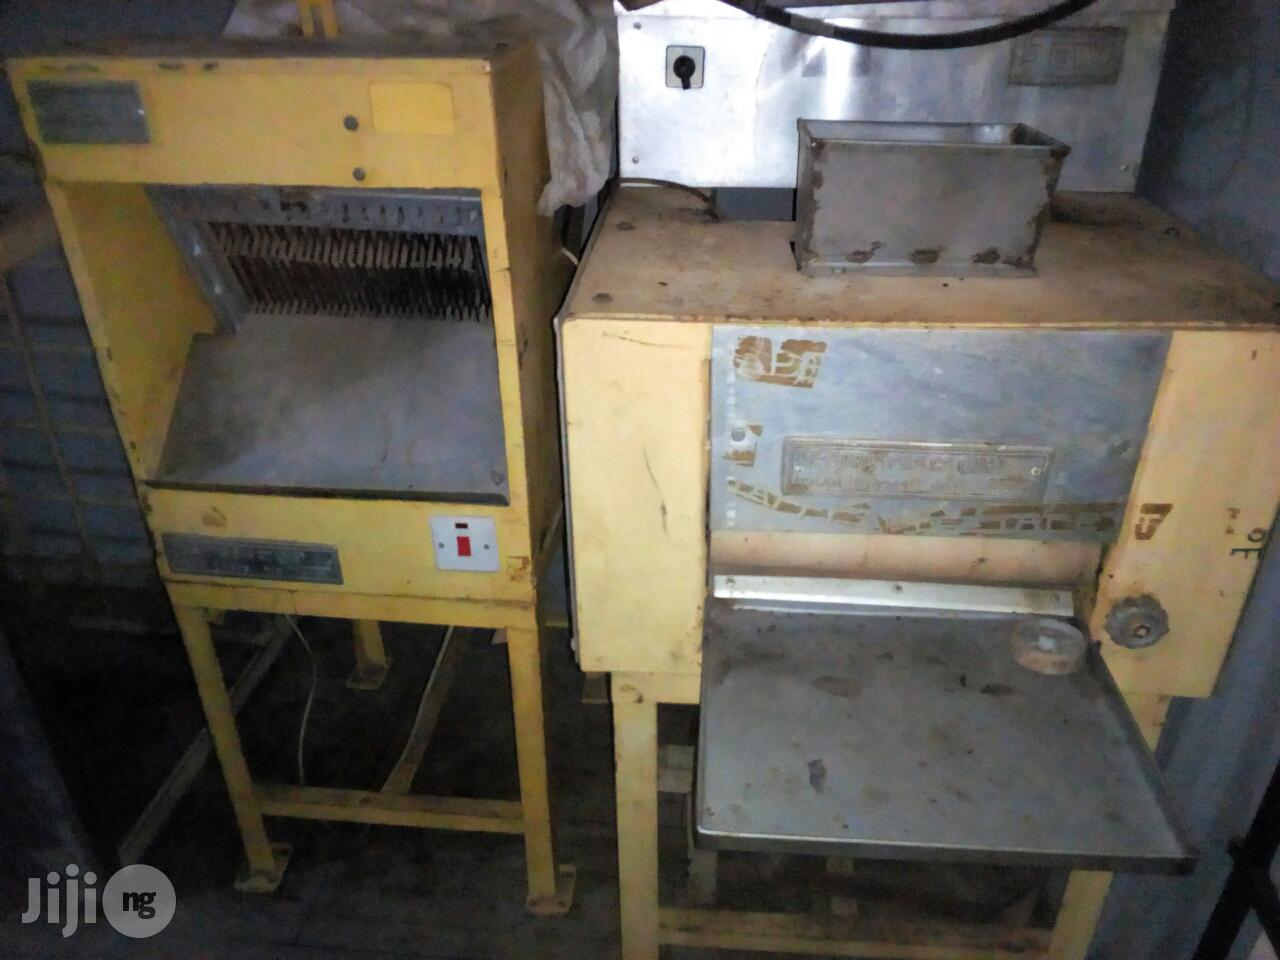 Bakery Equipment (Complete Set) | Restaurant & Catering Equipment for sale in Benin City, Edo State, Nigeria